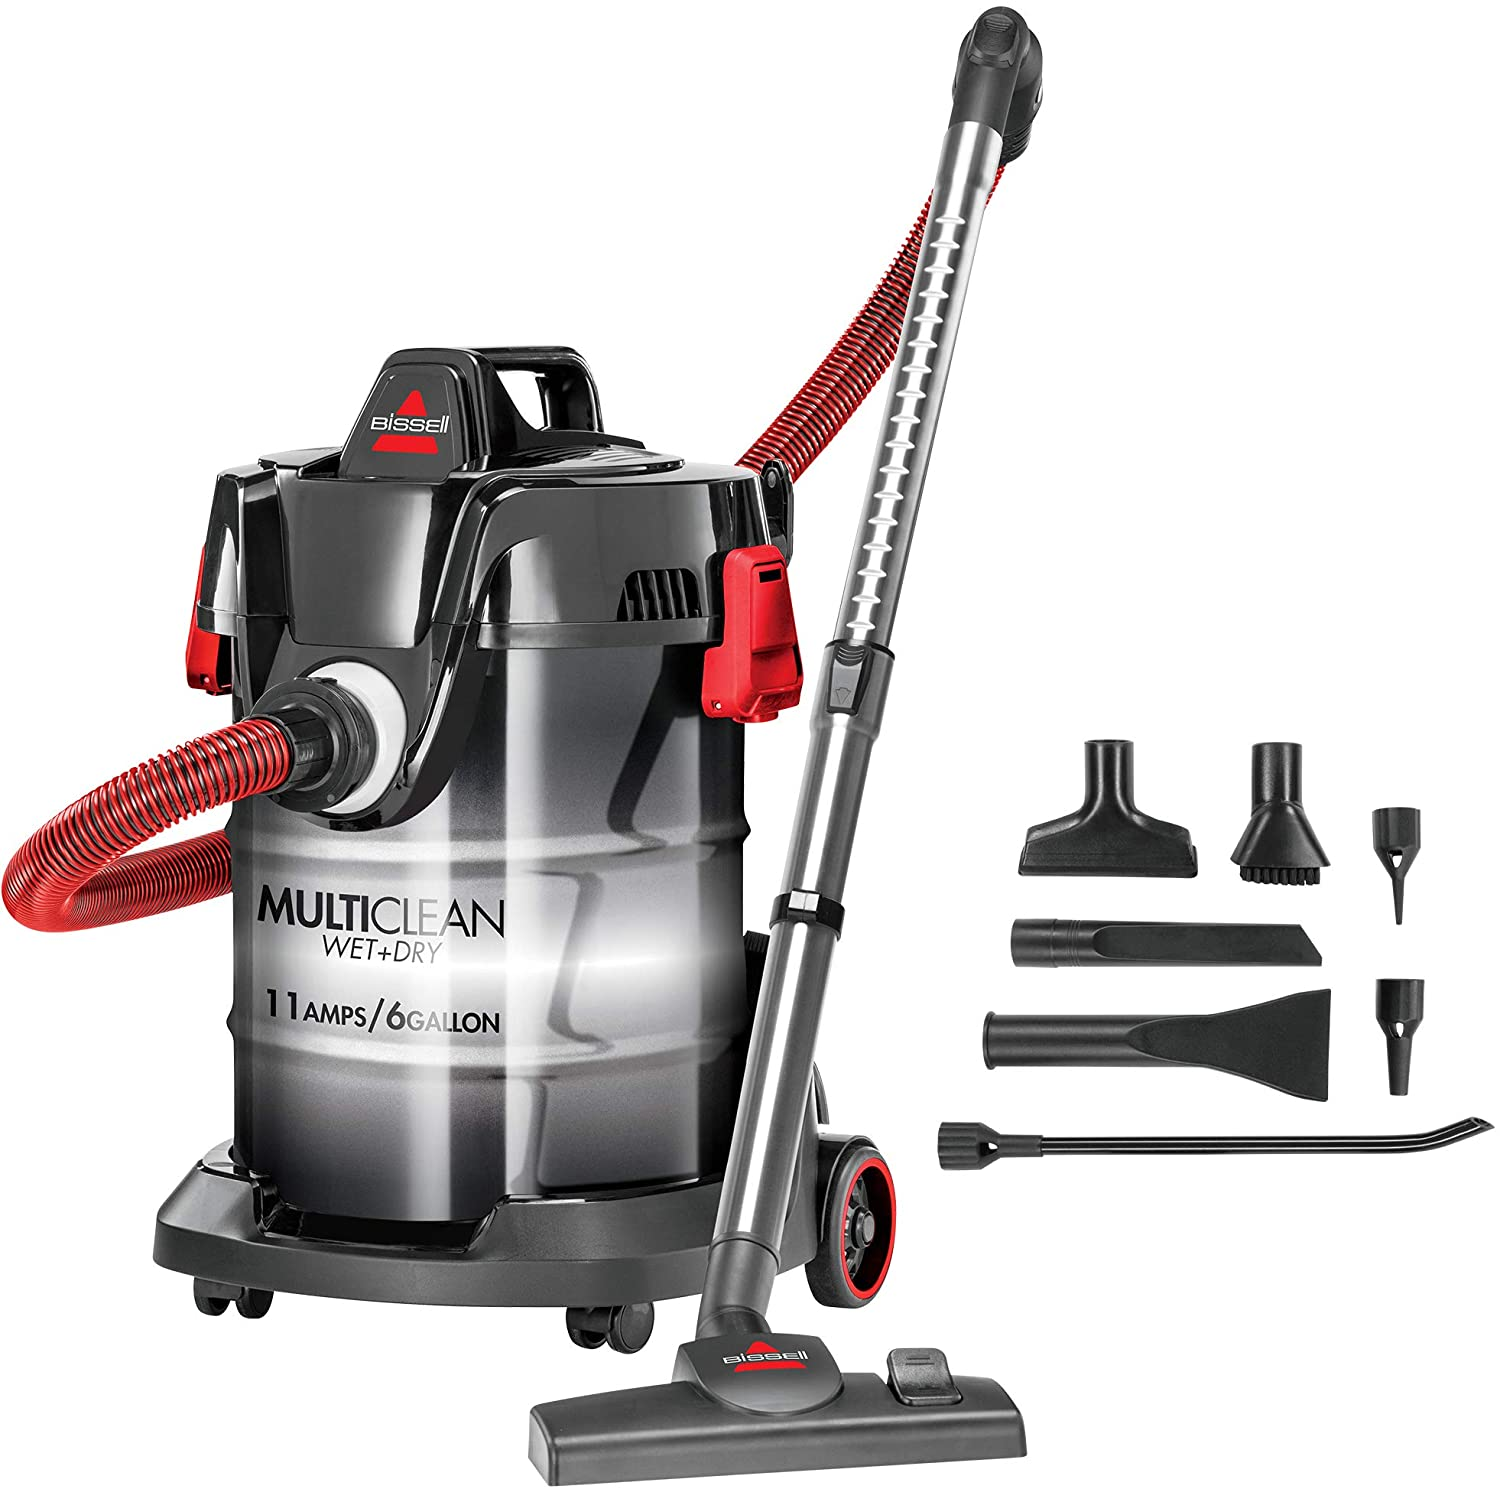 Bissell, Red, MultiClean Wet/Dry Garage and Auto Vacuum Cleaner